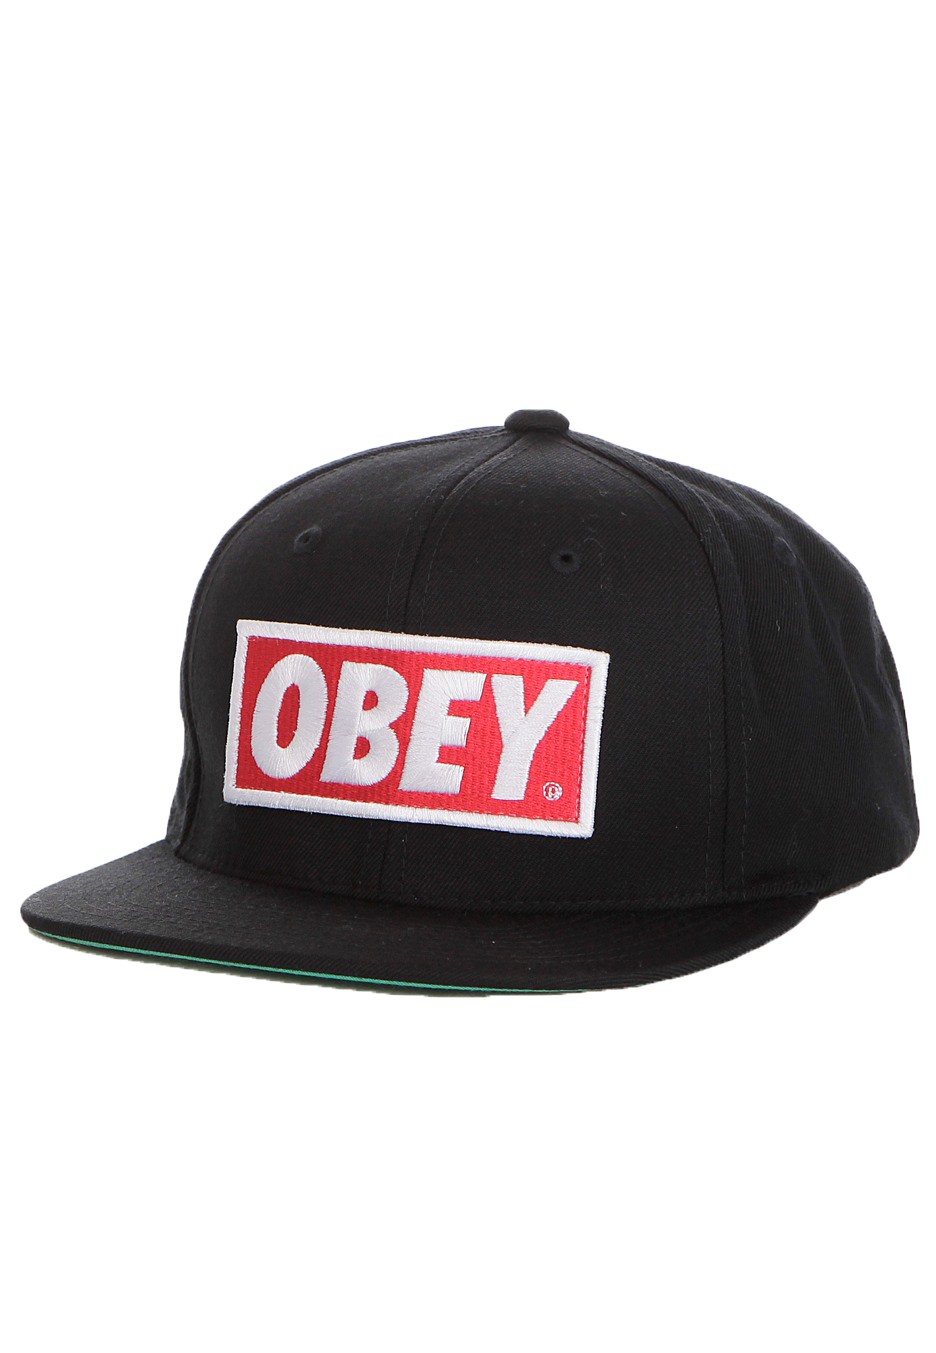 tout neuf 6d394 79939 Casquette mlg png » PNG Image